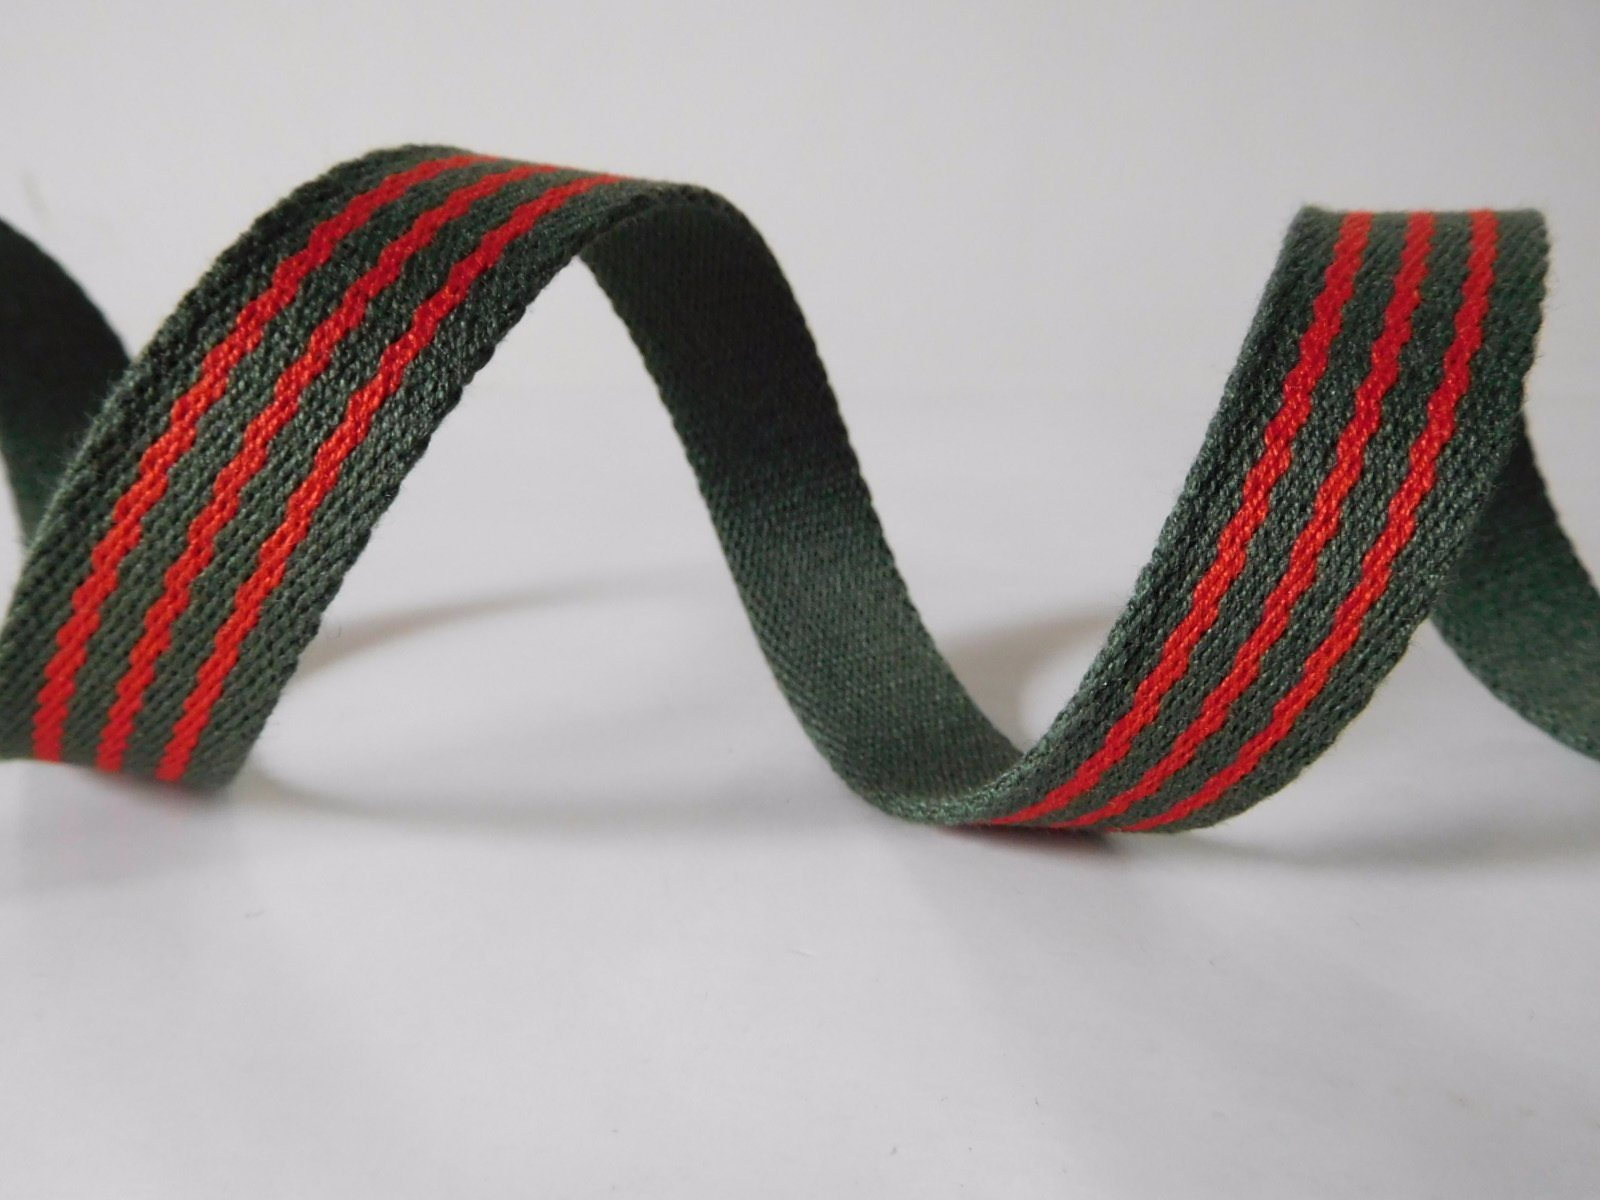 20mm Aramid Fiber Webbing for Fire Safety Clothes